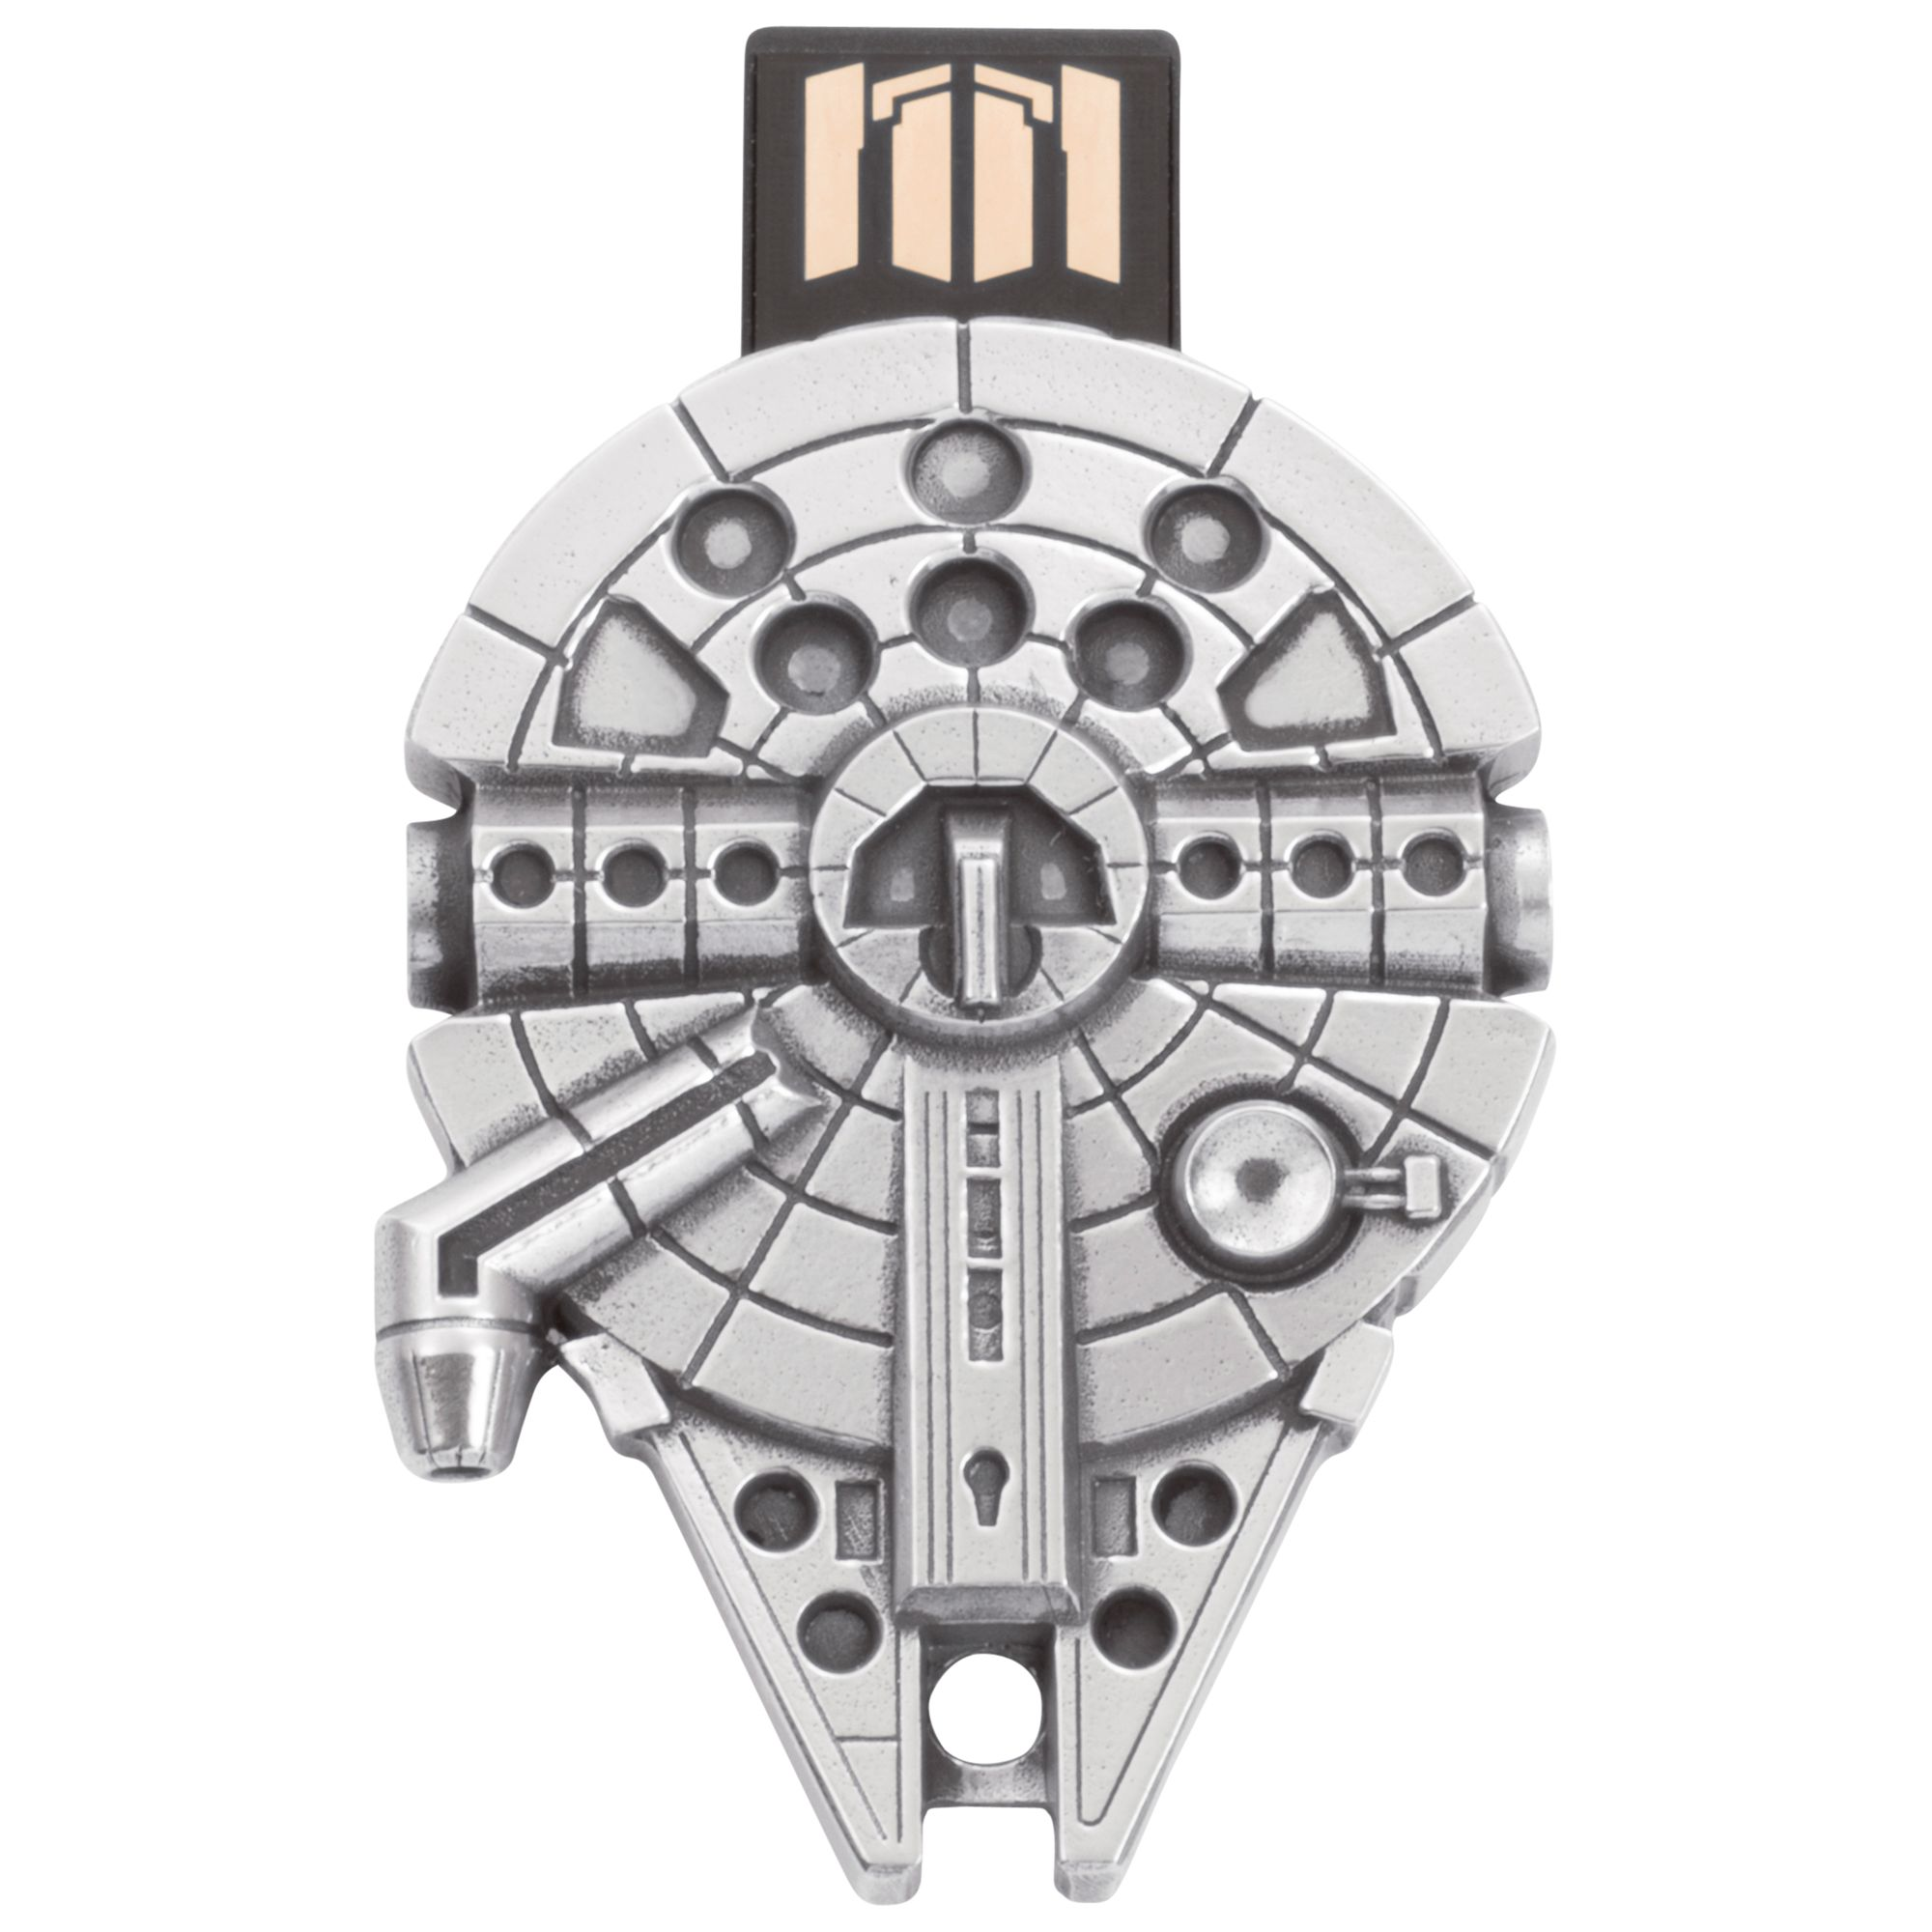 906774760d7e Royal Selangor Star Wars Millenium Falcon USB Flash Drive